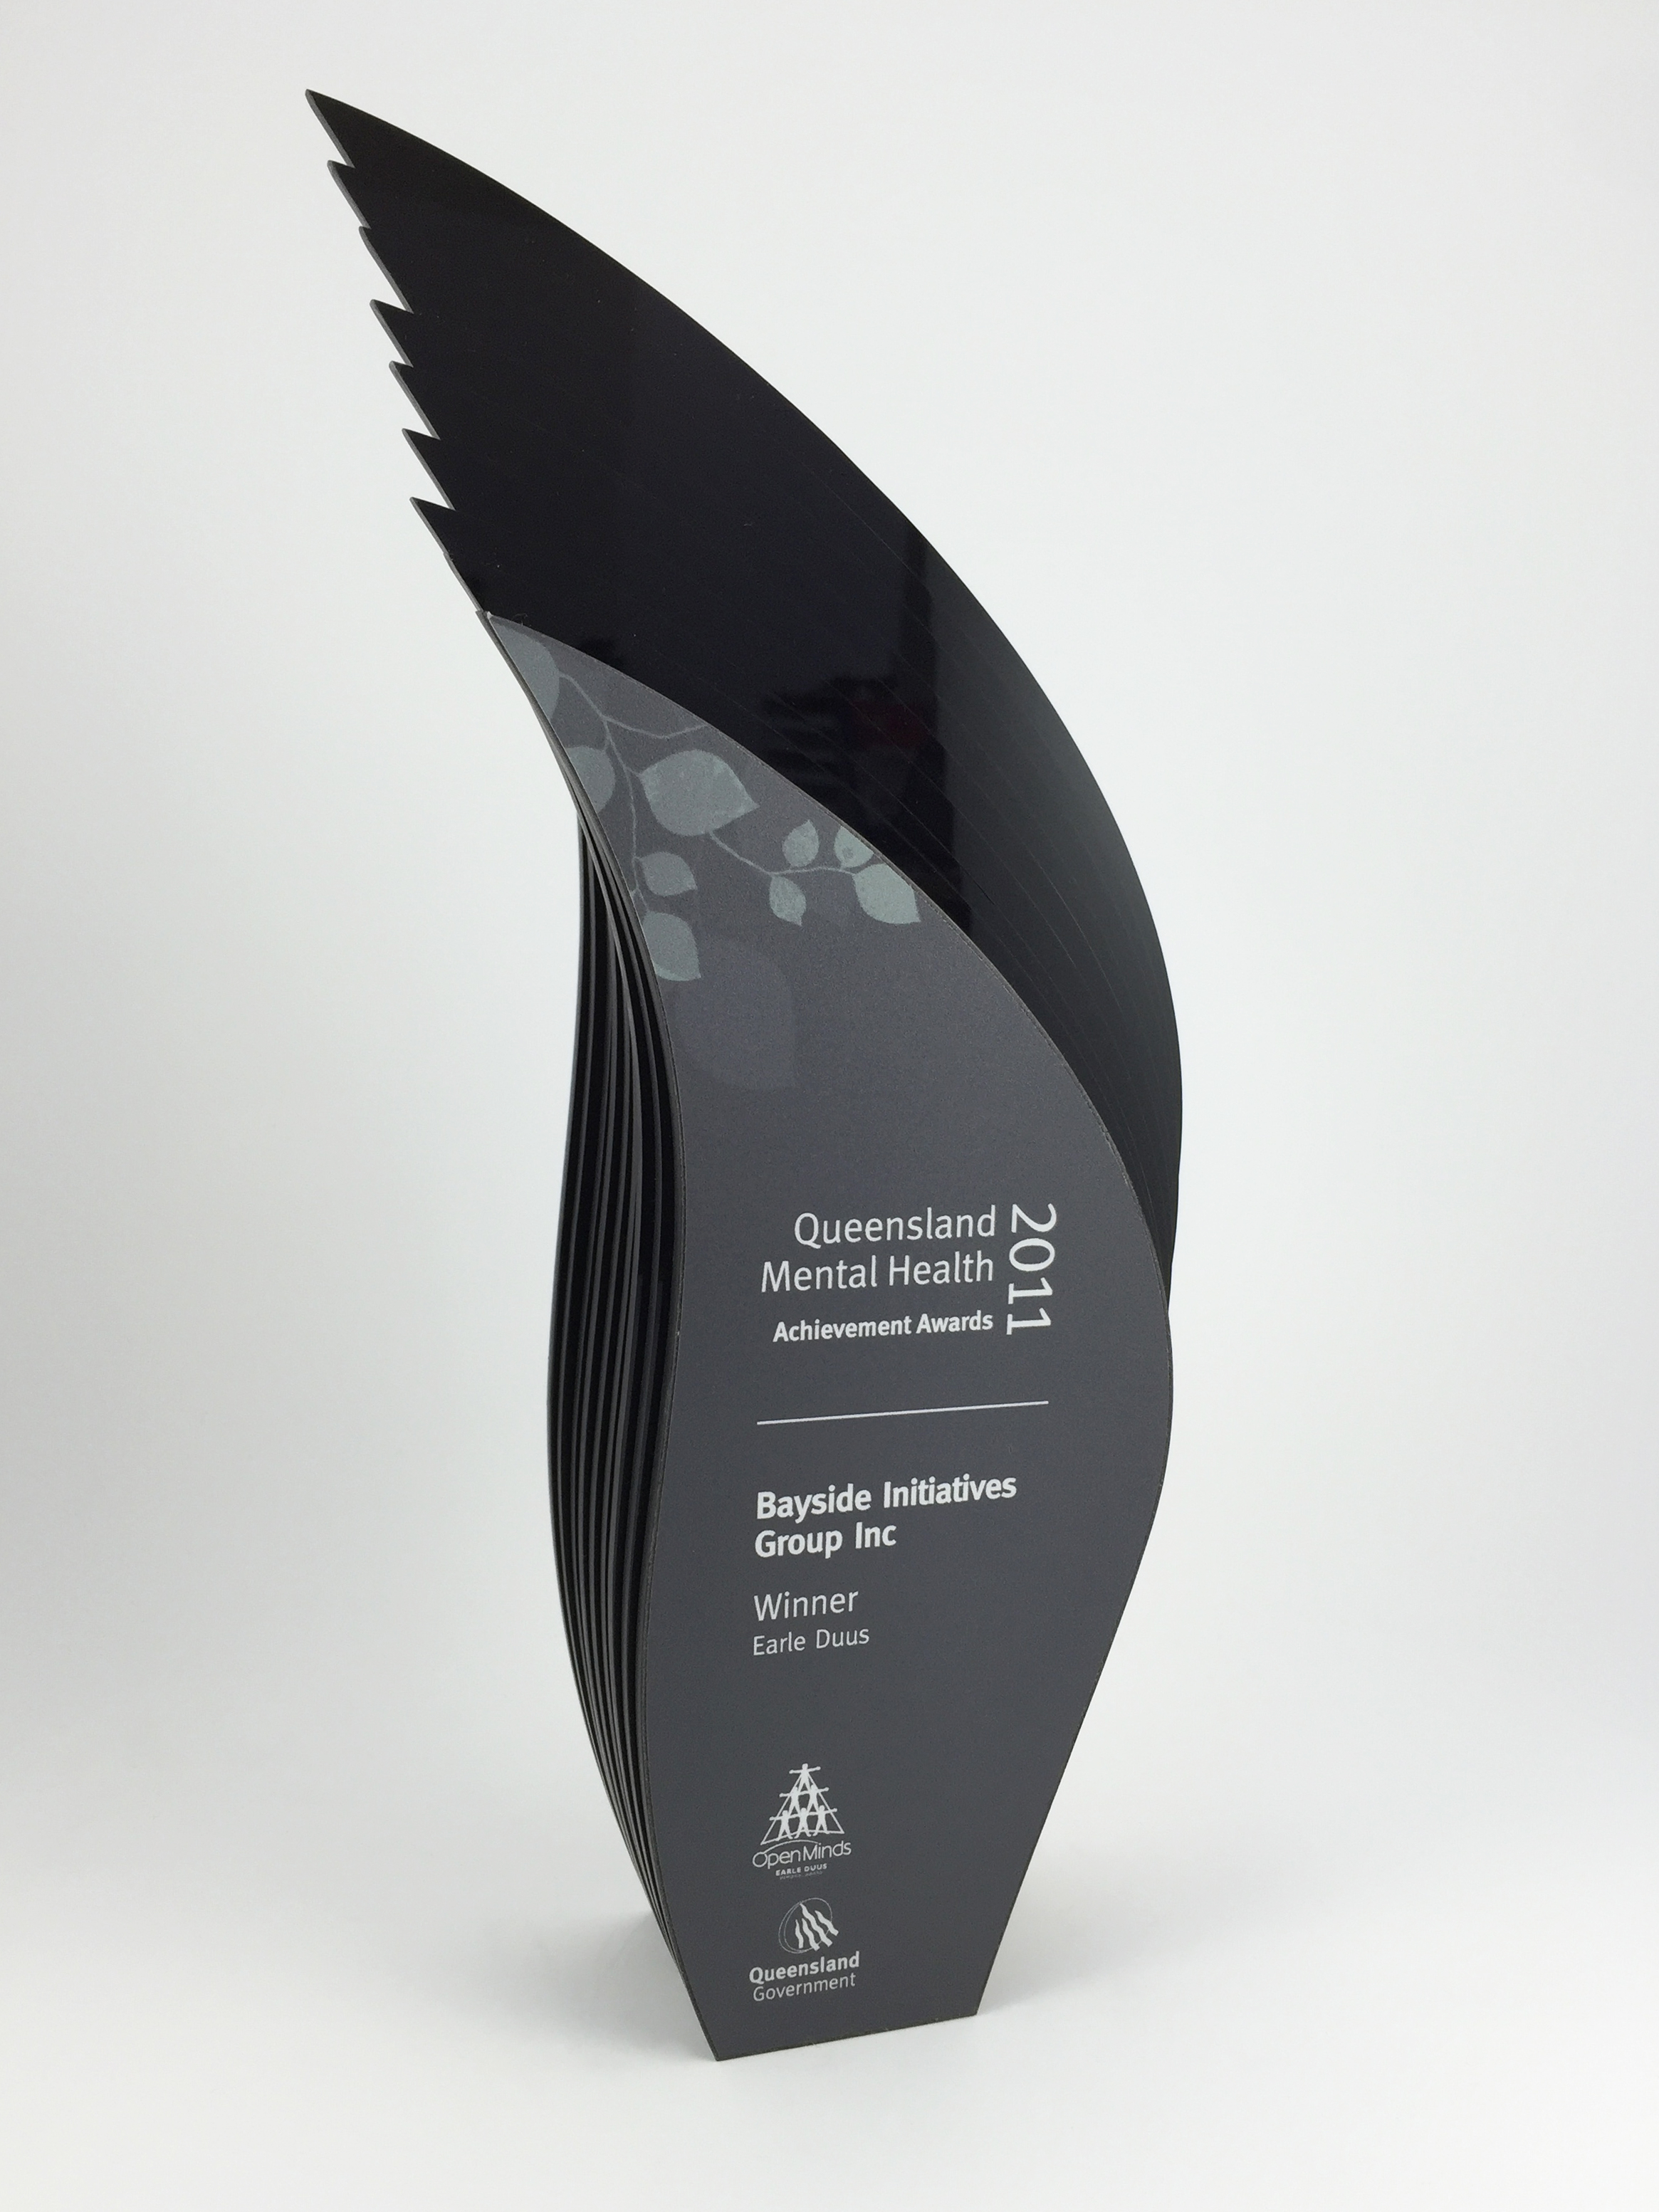 qld-mental-health-acrylic-trophy-awards-03.jpg